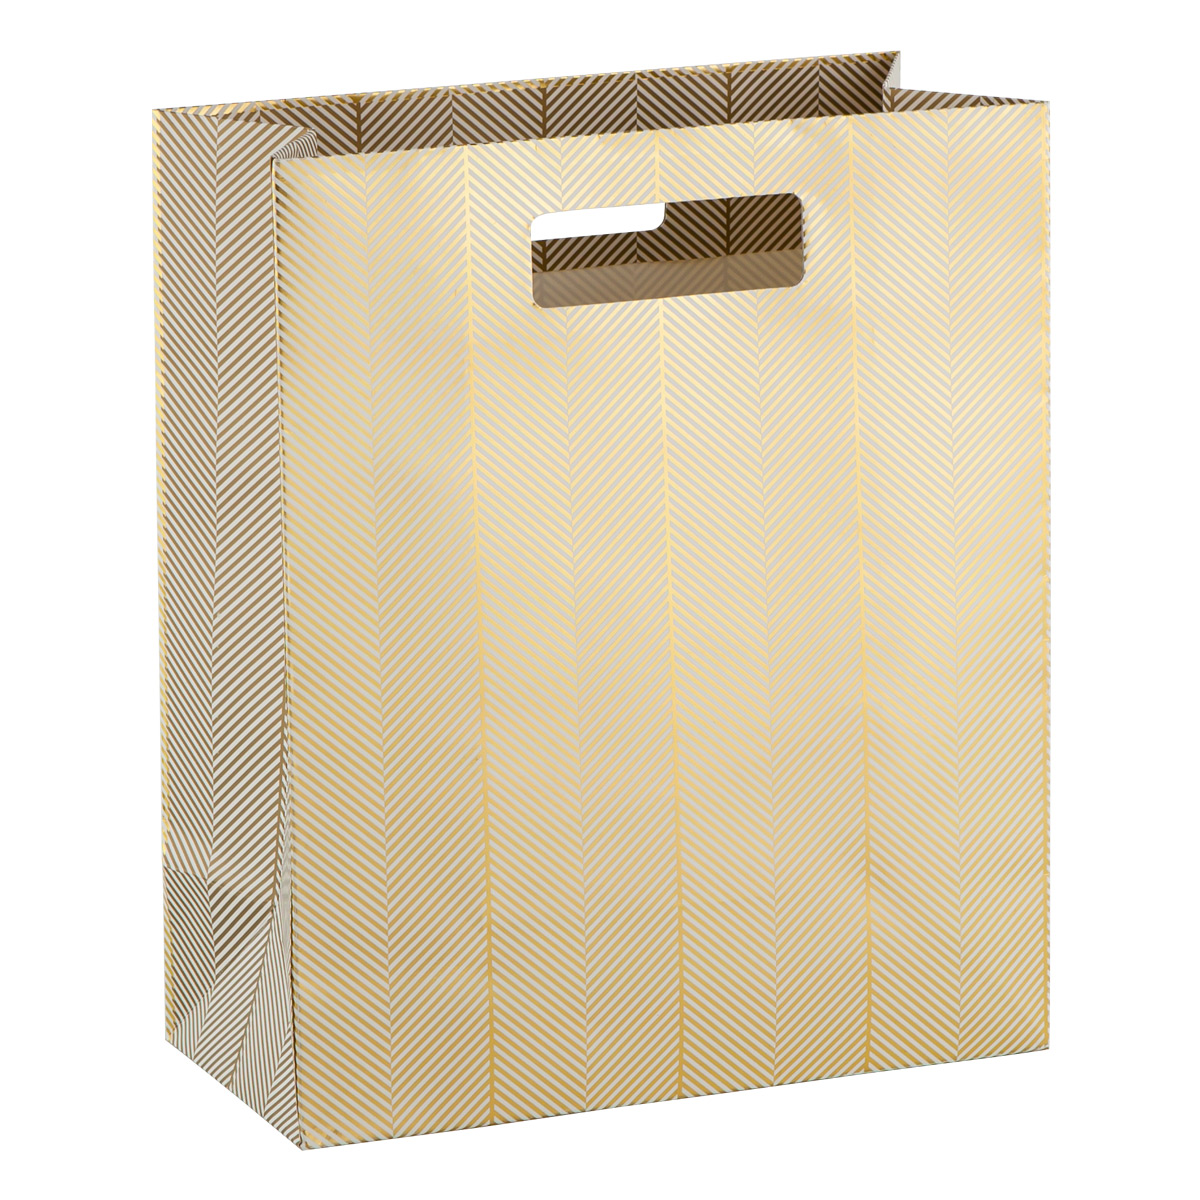 Large Golden Twill Foil Gift Bag